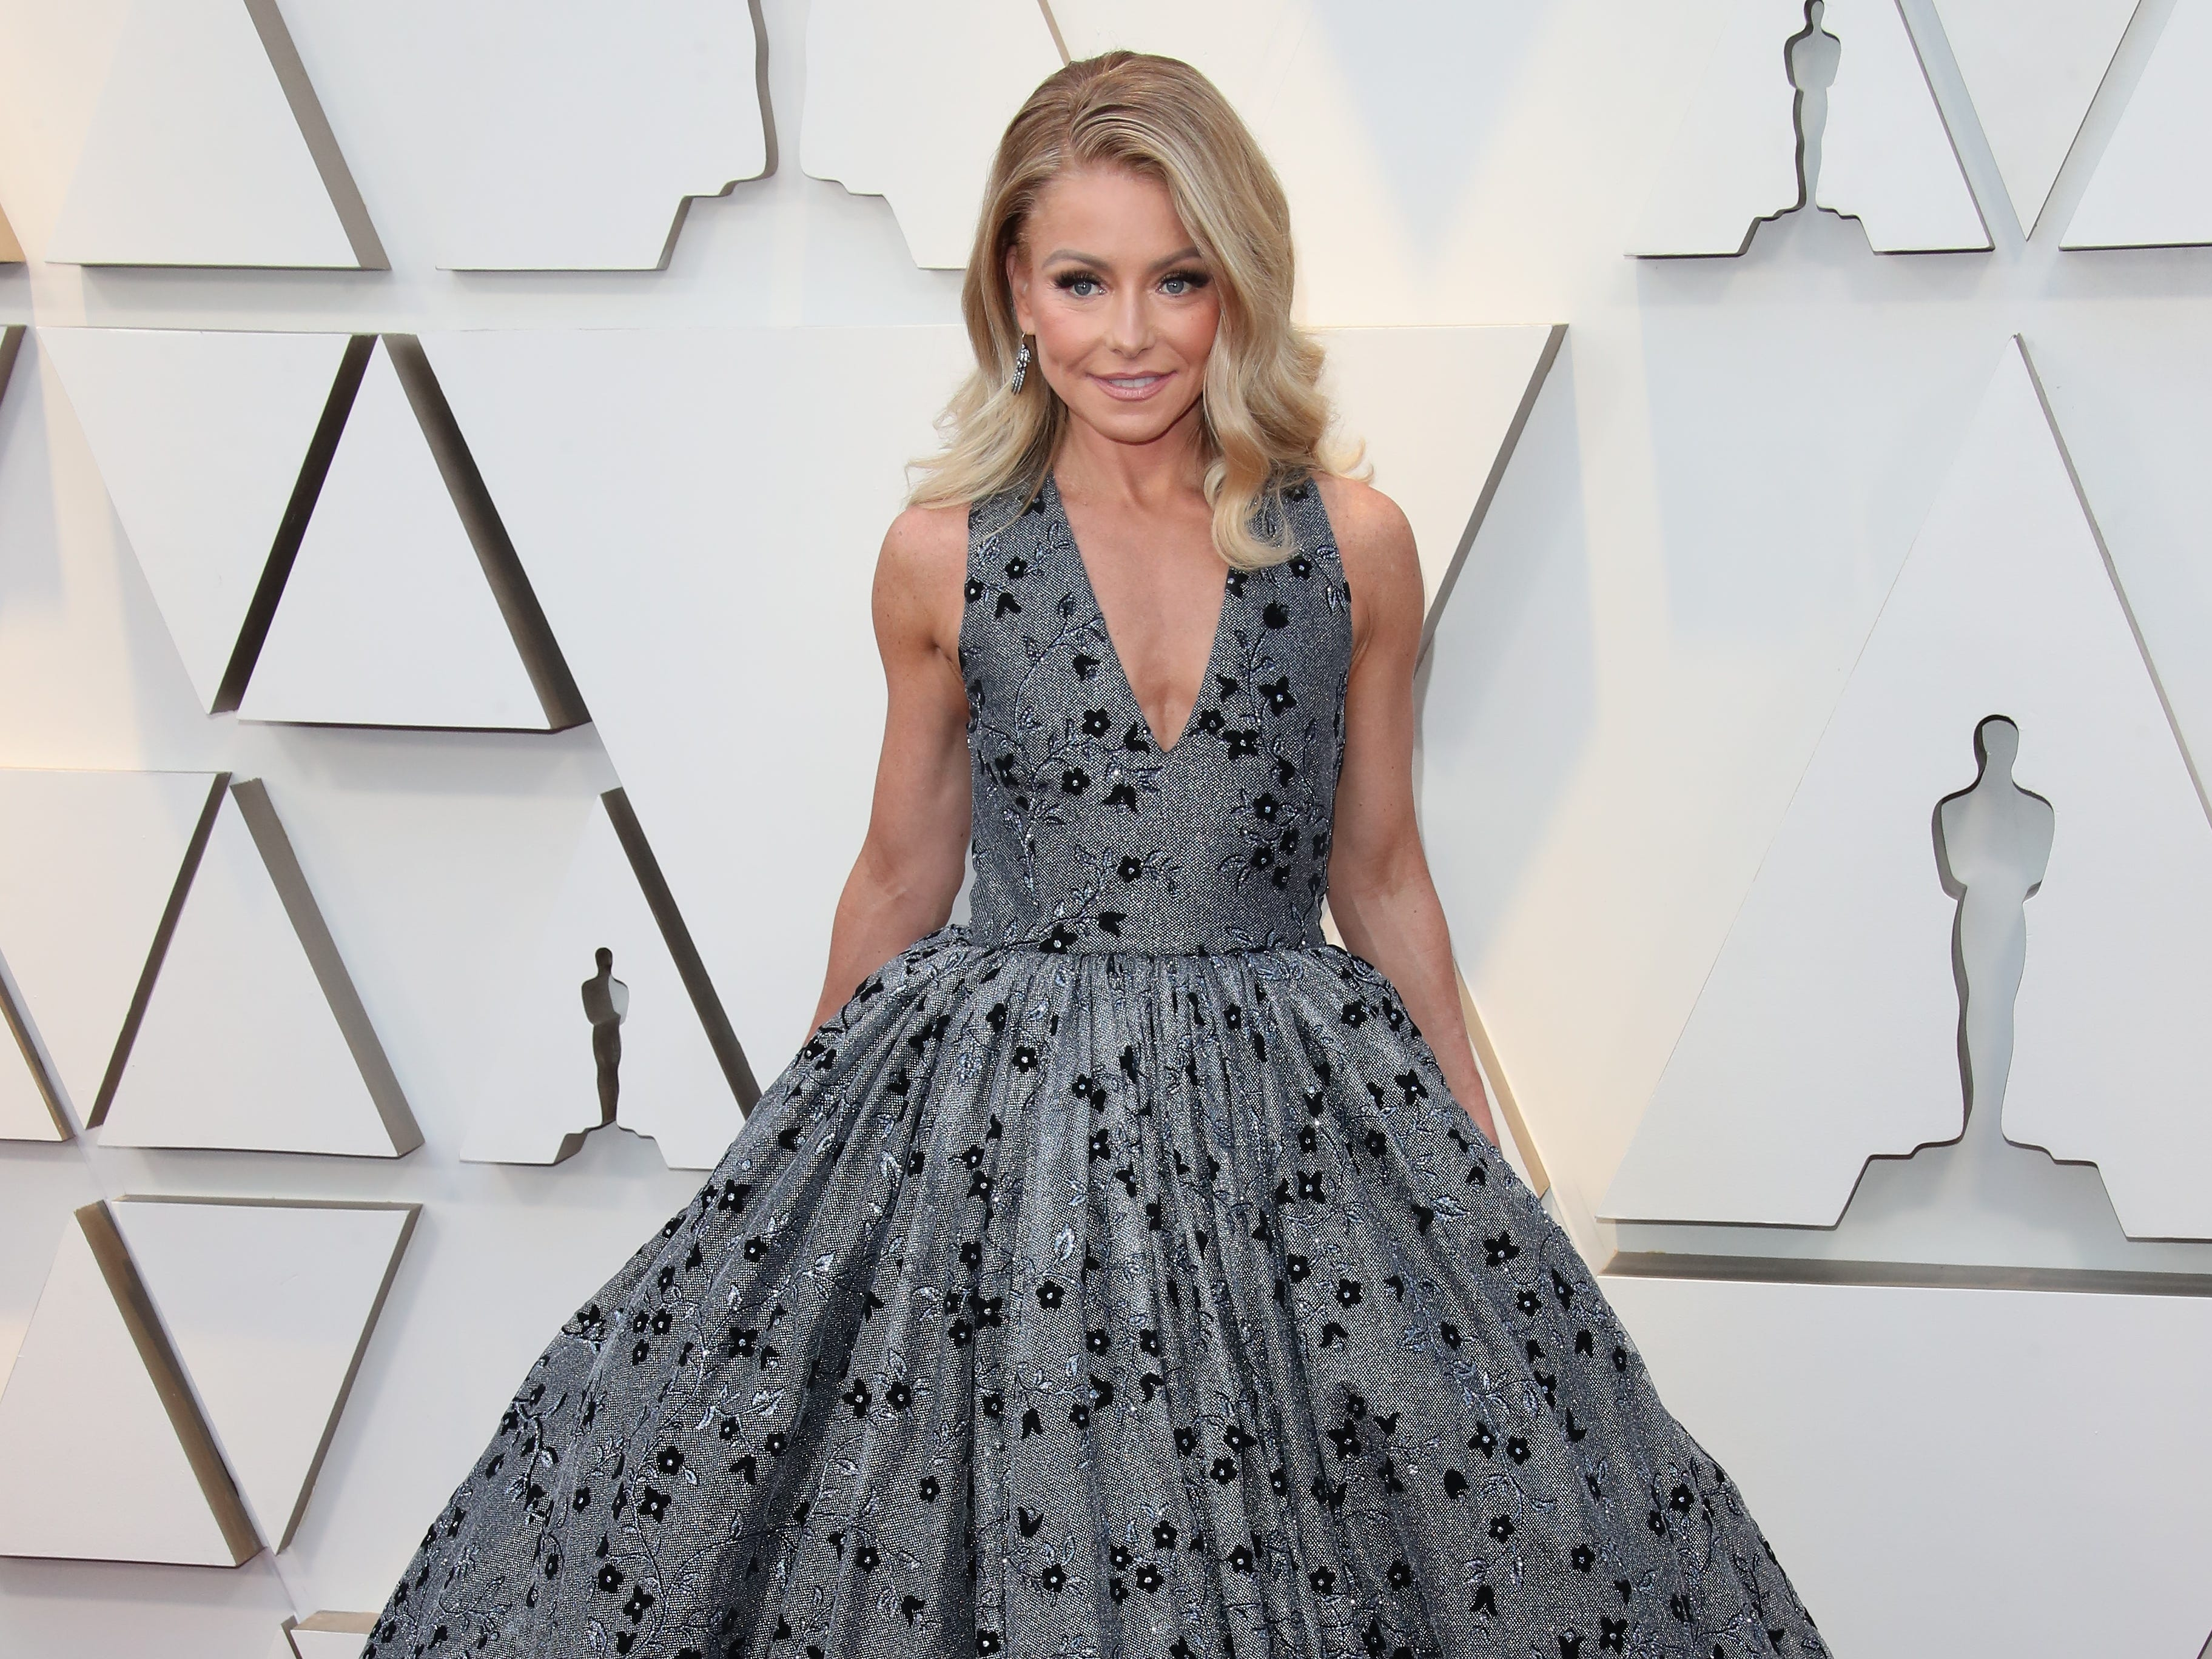 February 24, 2019; Los Angeles, CA, USA; Kelly Ripa arrives at the 91st Academy Awards at the Dolby Theatre. Mandatory Credit: Dan MacMedan-USA TODAY NETWORK (Via OlyDrop)